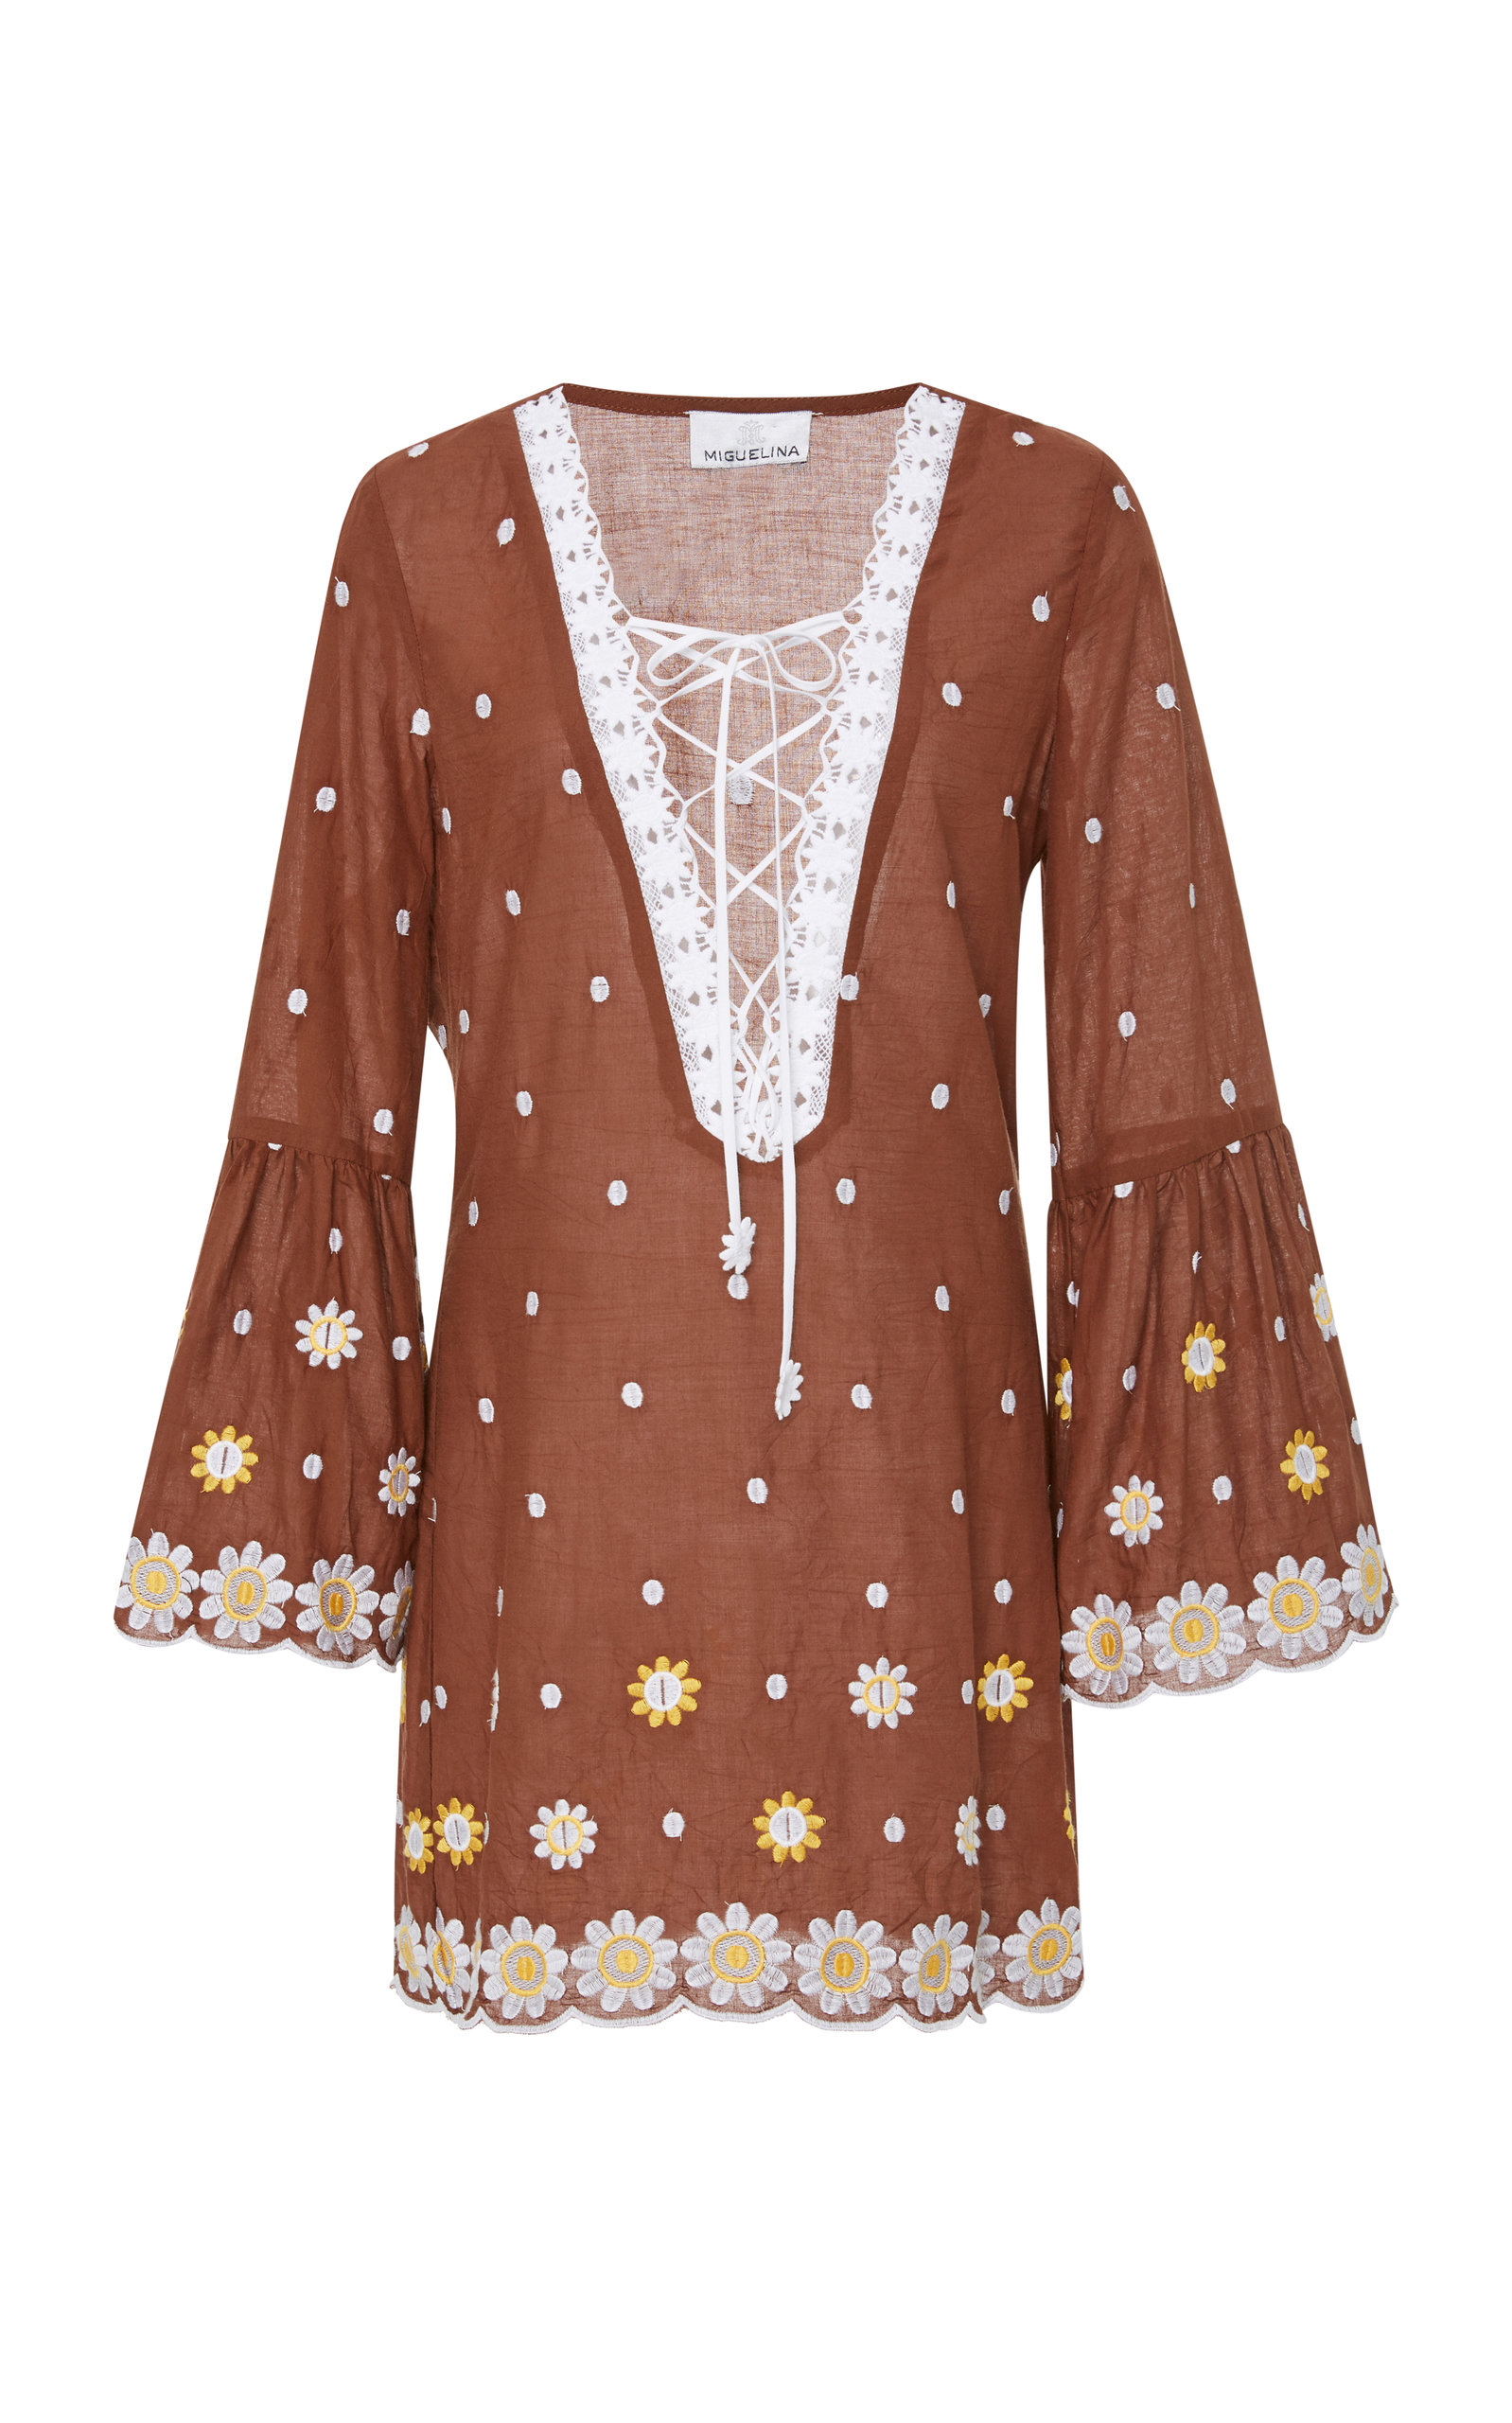 Lace-Up Embroidered Cotton MIni Dress Miguelina Outlet Genuine SUwANF9WlH